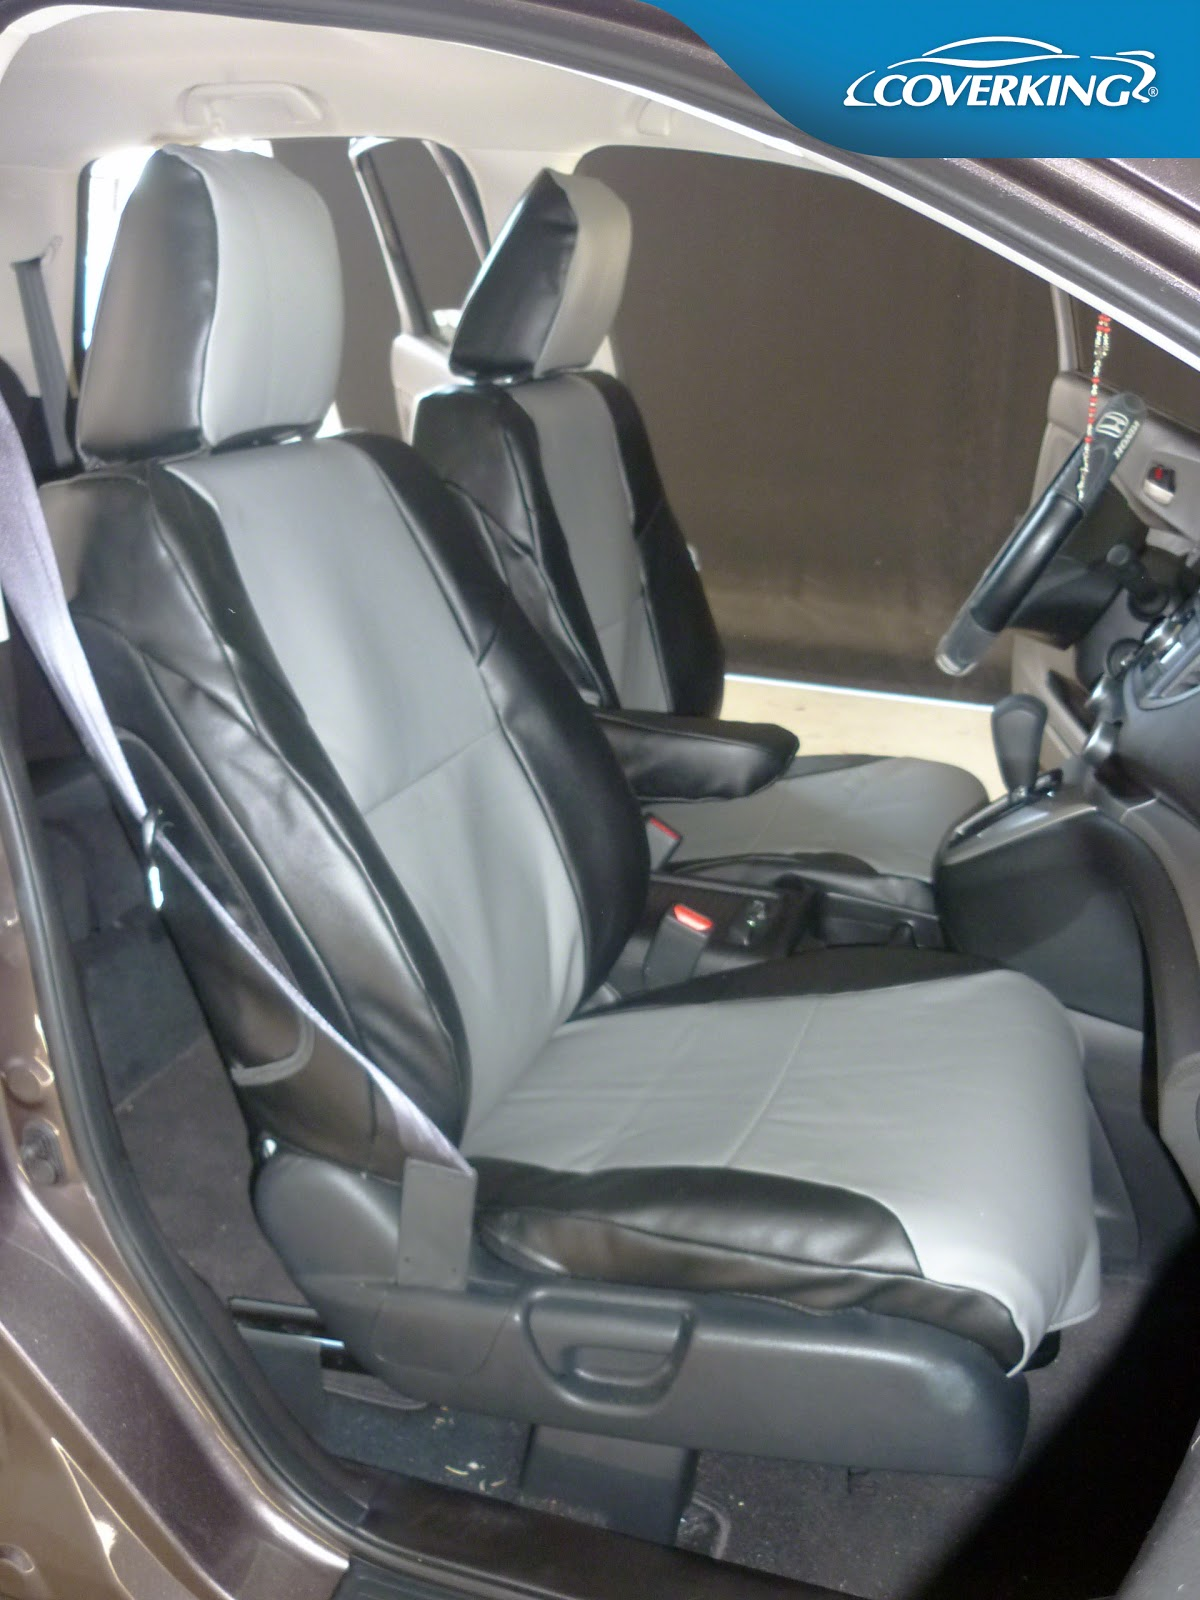 New Seat Covers For The Honda CR V Made By Coverking